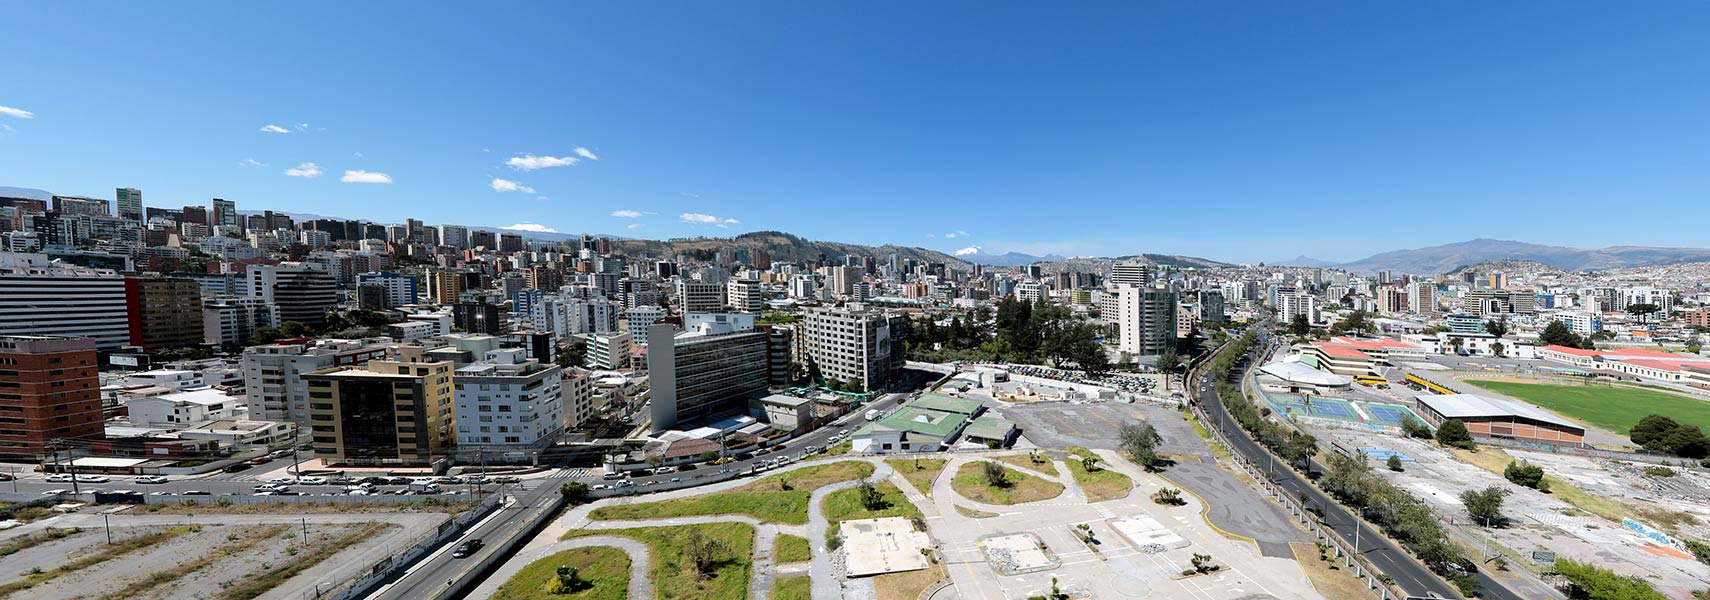 Panorama of Quito, capital city of Ecuador